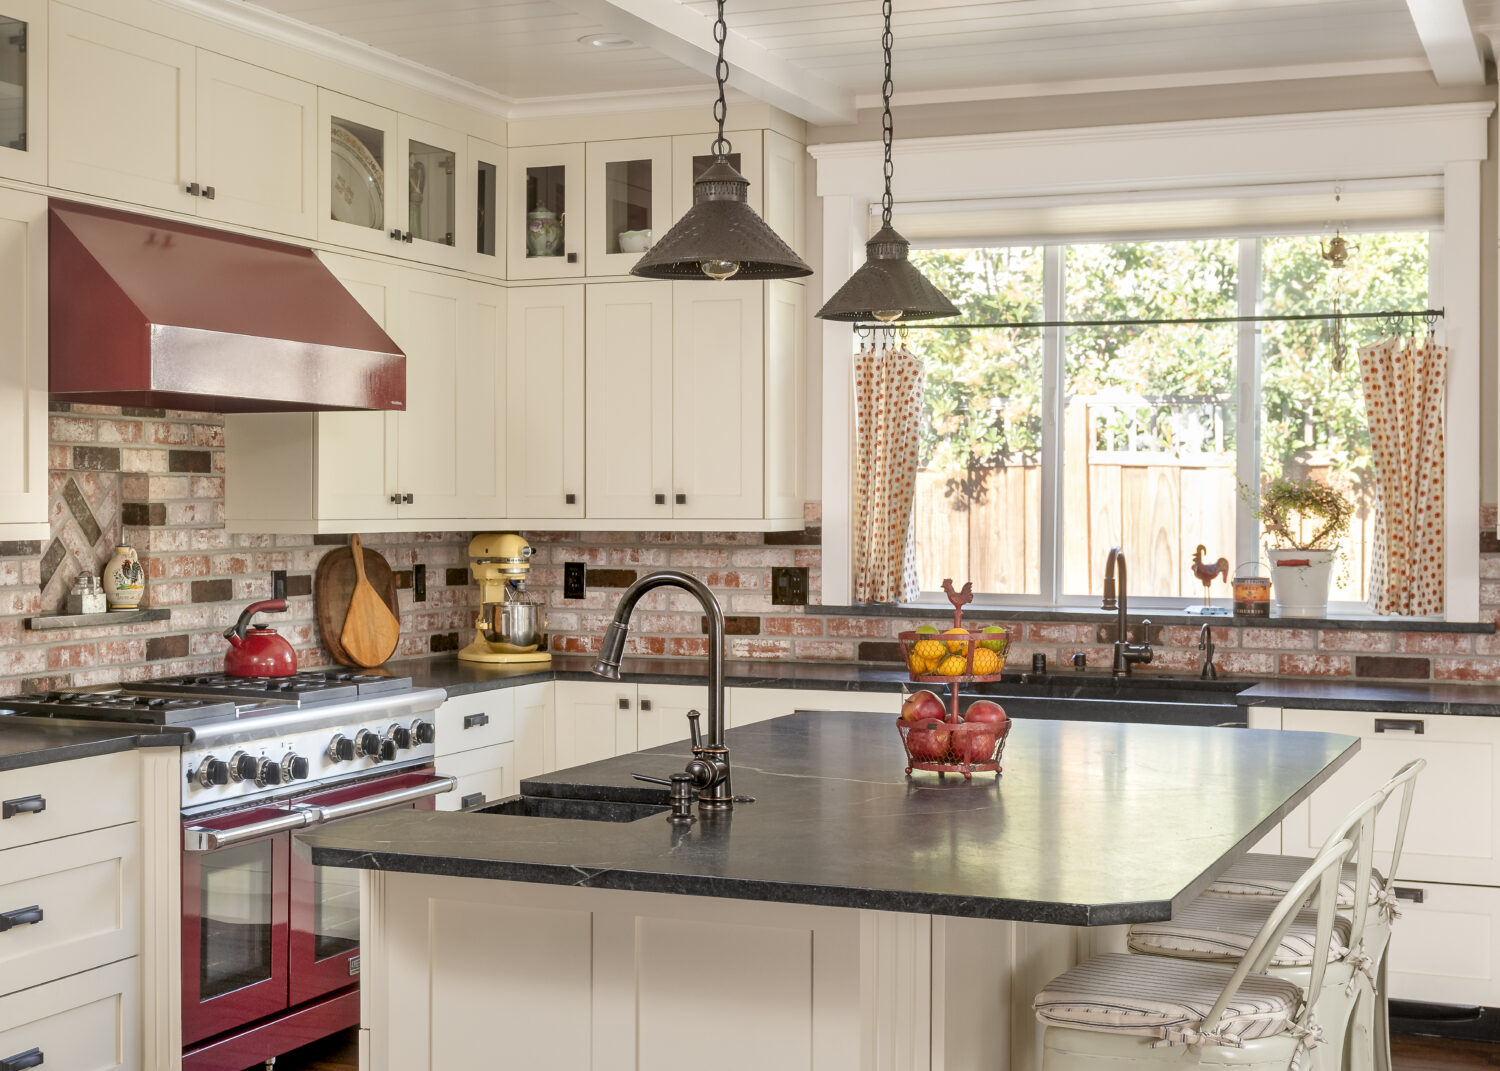 Barn Red And Creamy White Modern Country Kitchen Dura Supreme Cabinetry